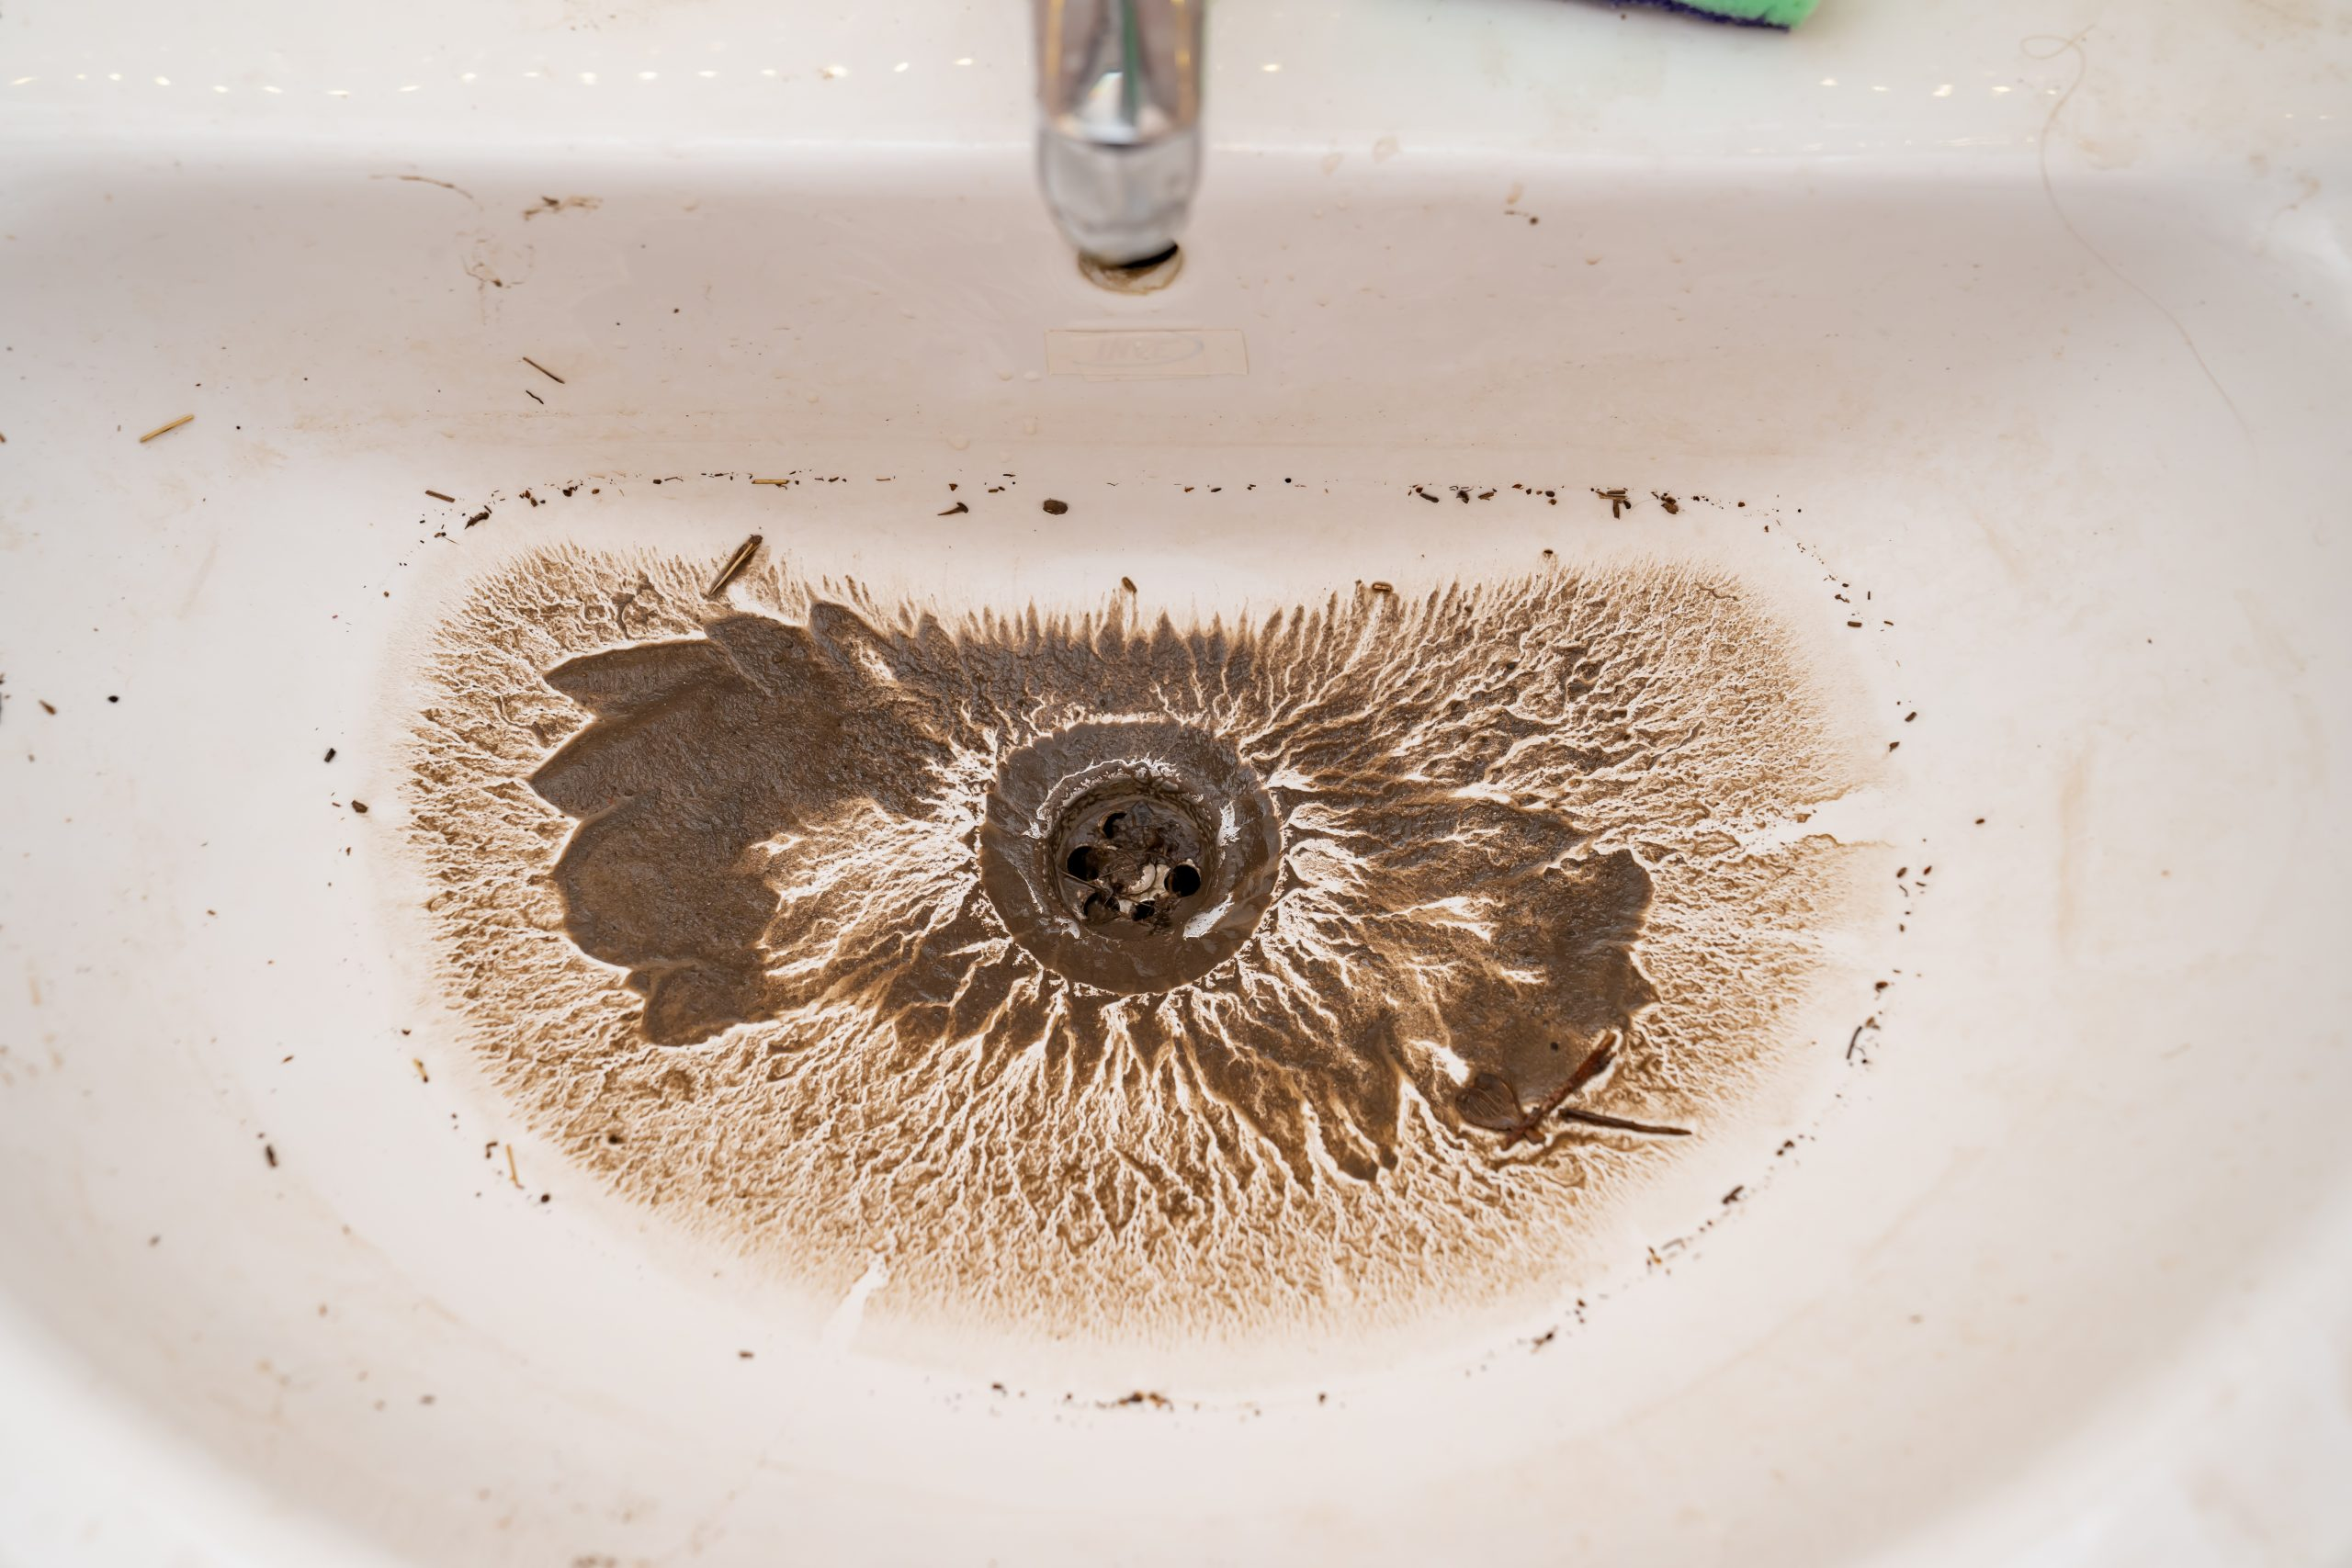 water drains into the dirty sink drain after the blockage is removed